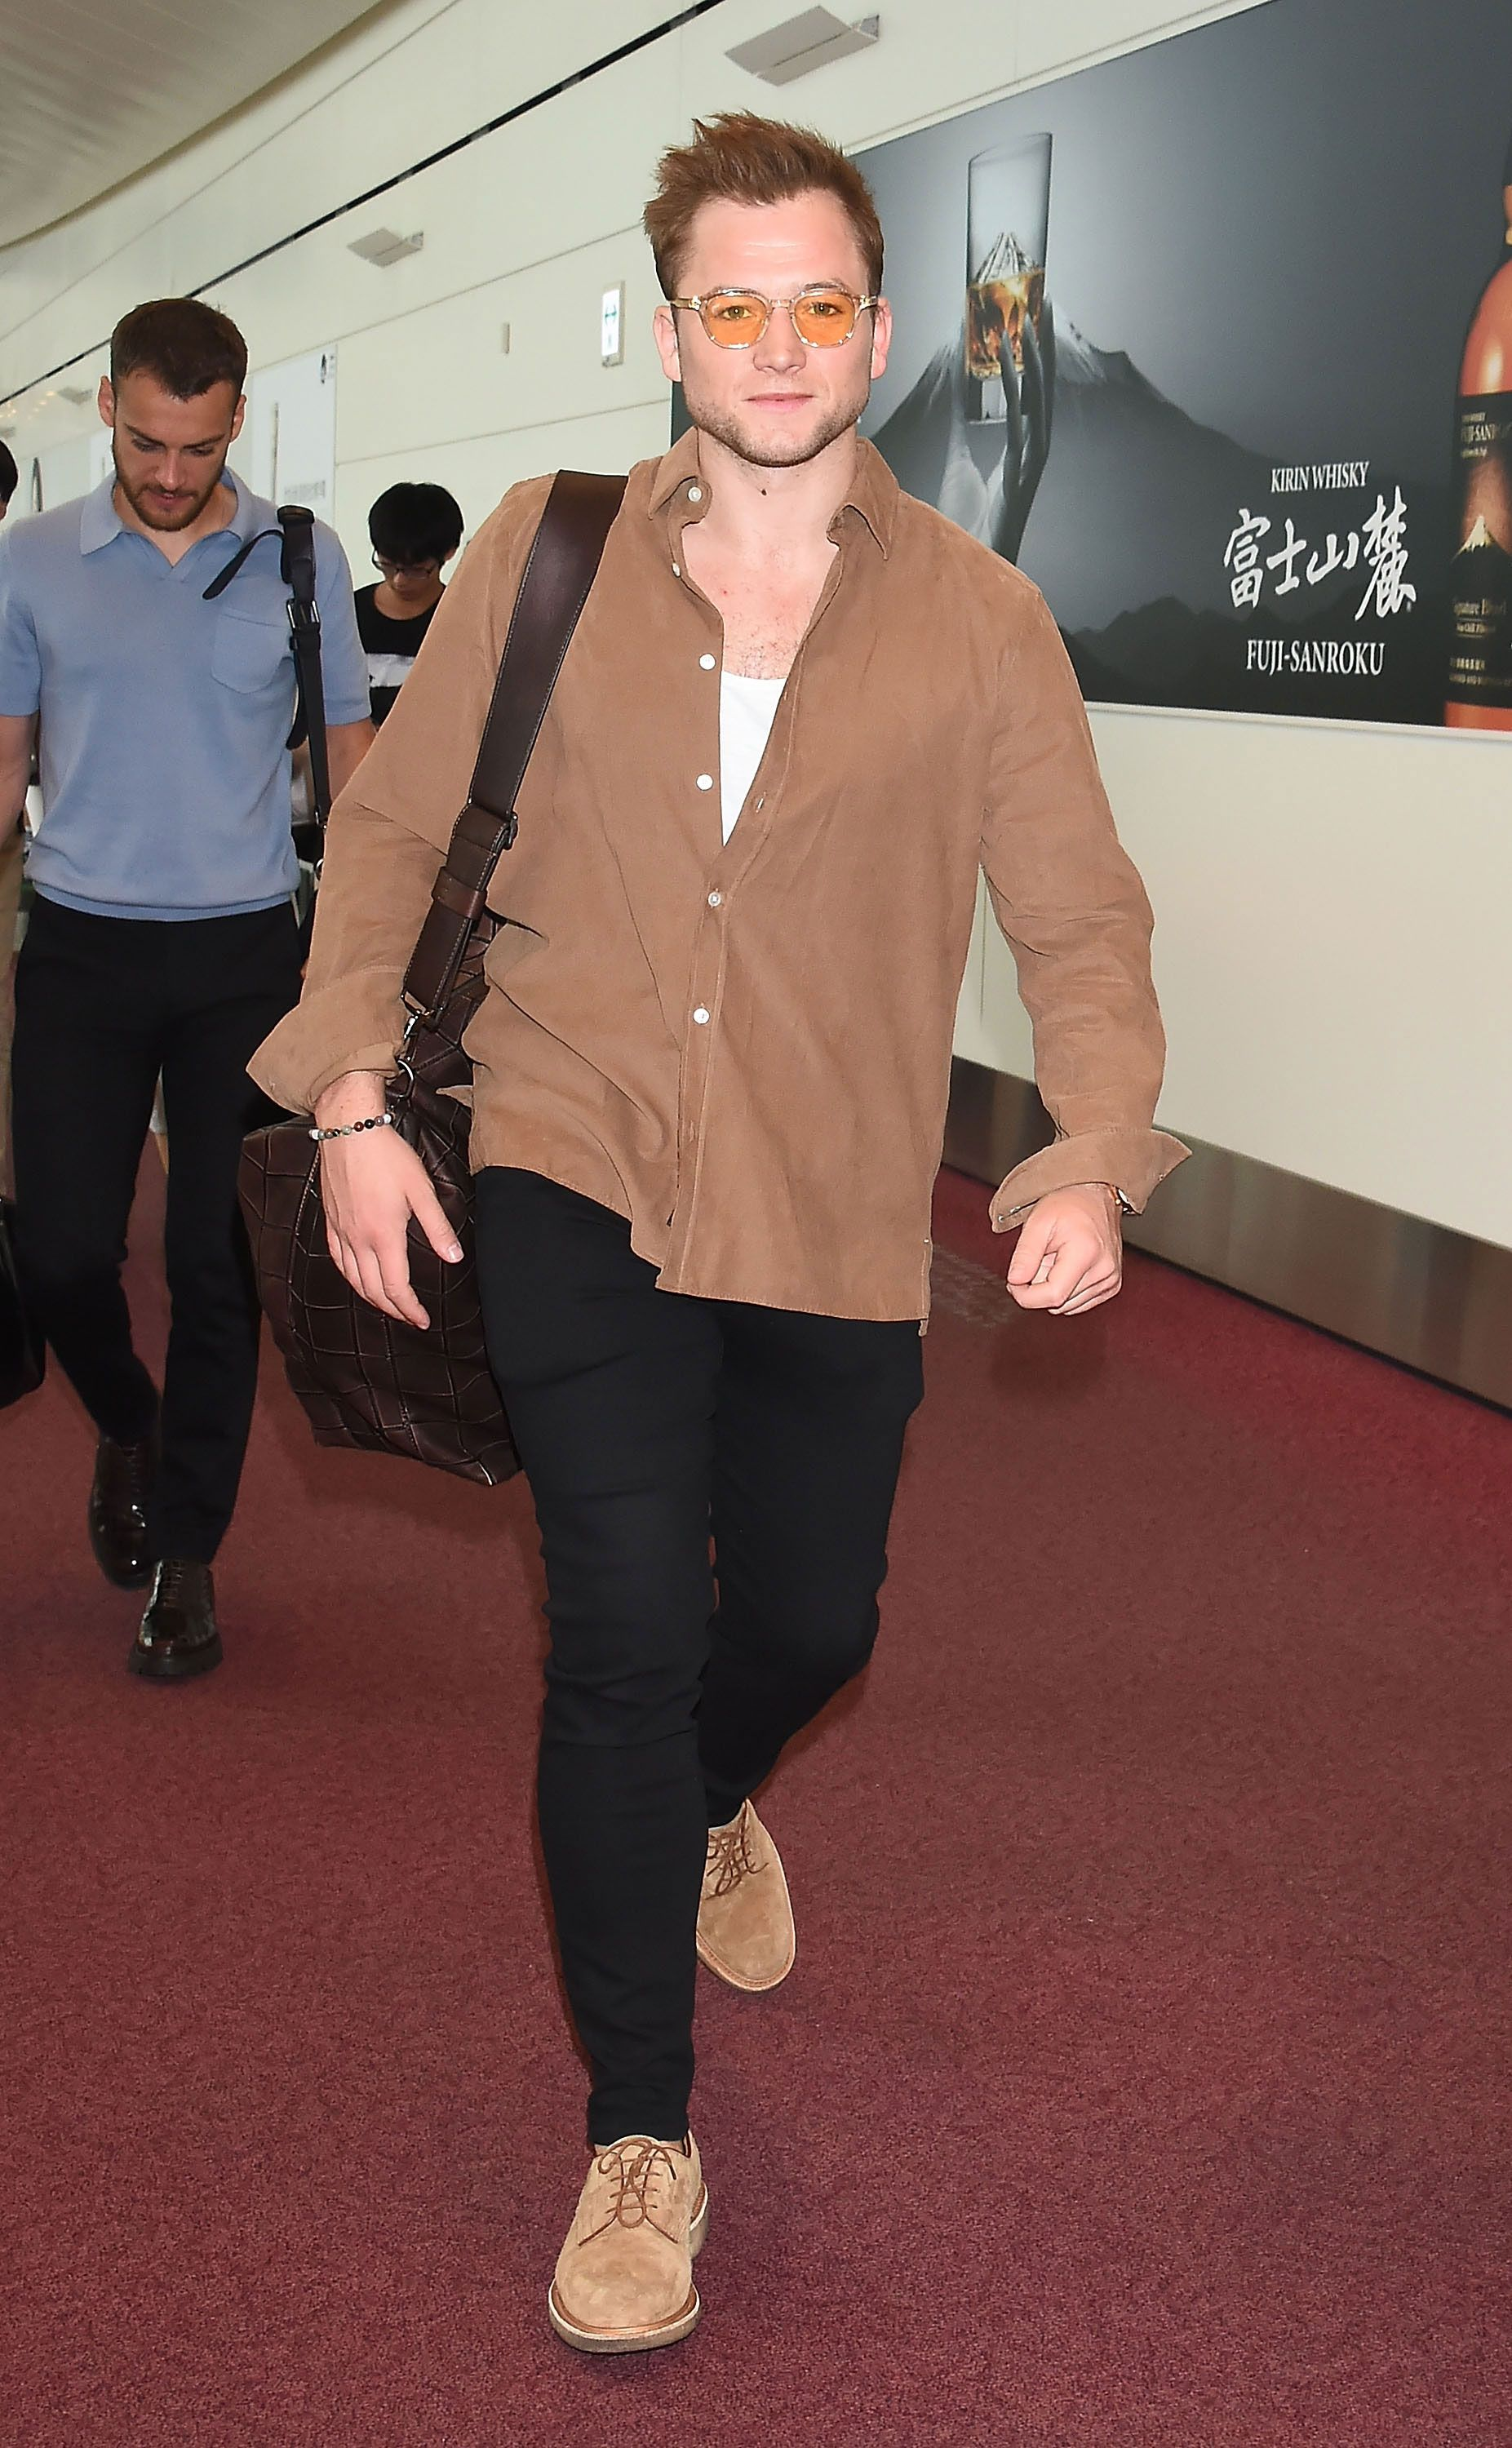 Taron Egerton's Toasty Tan Shirt Is a Perfect Airport Style Flex